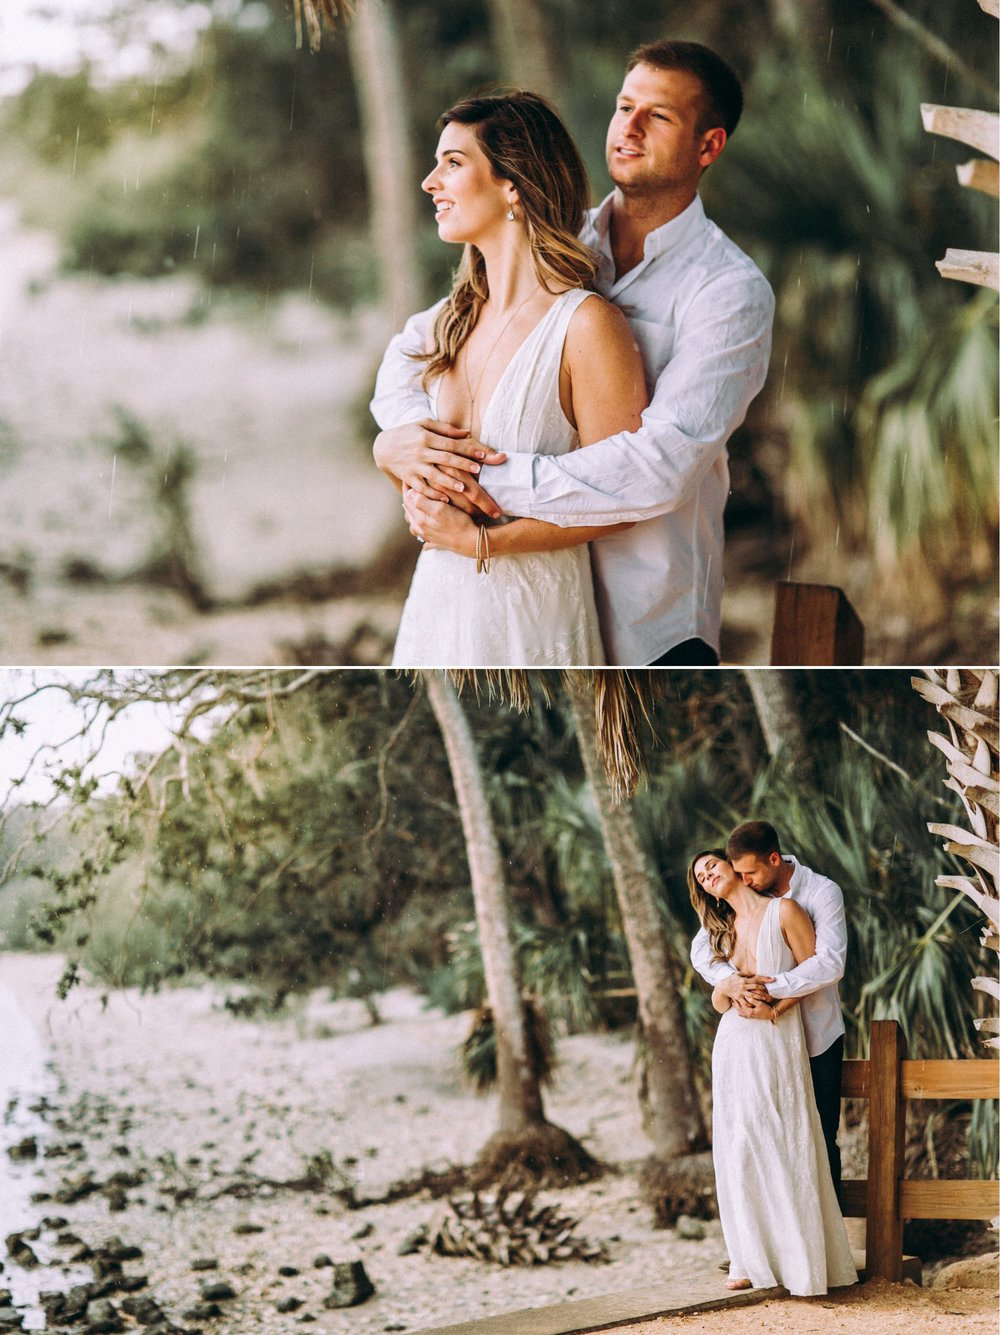 Rainy day Winter Park engagement photography with a bohemian chic vibe, styled with a white maxi dress, brown shoes, and neutral toned outfits at the Washington Oaks Garden State Park.